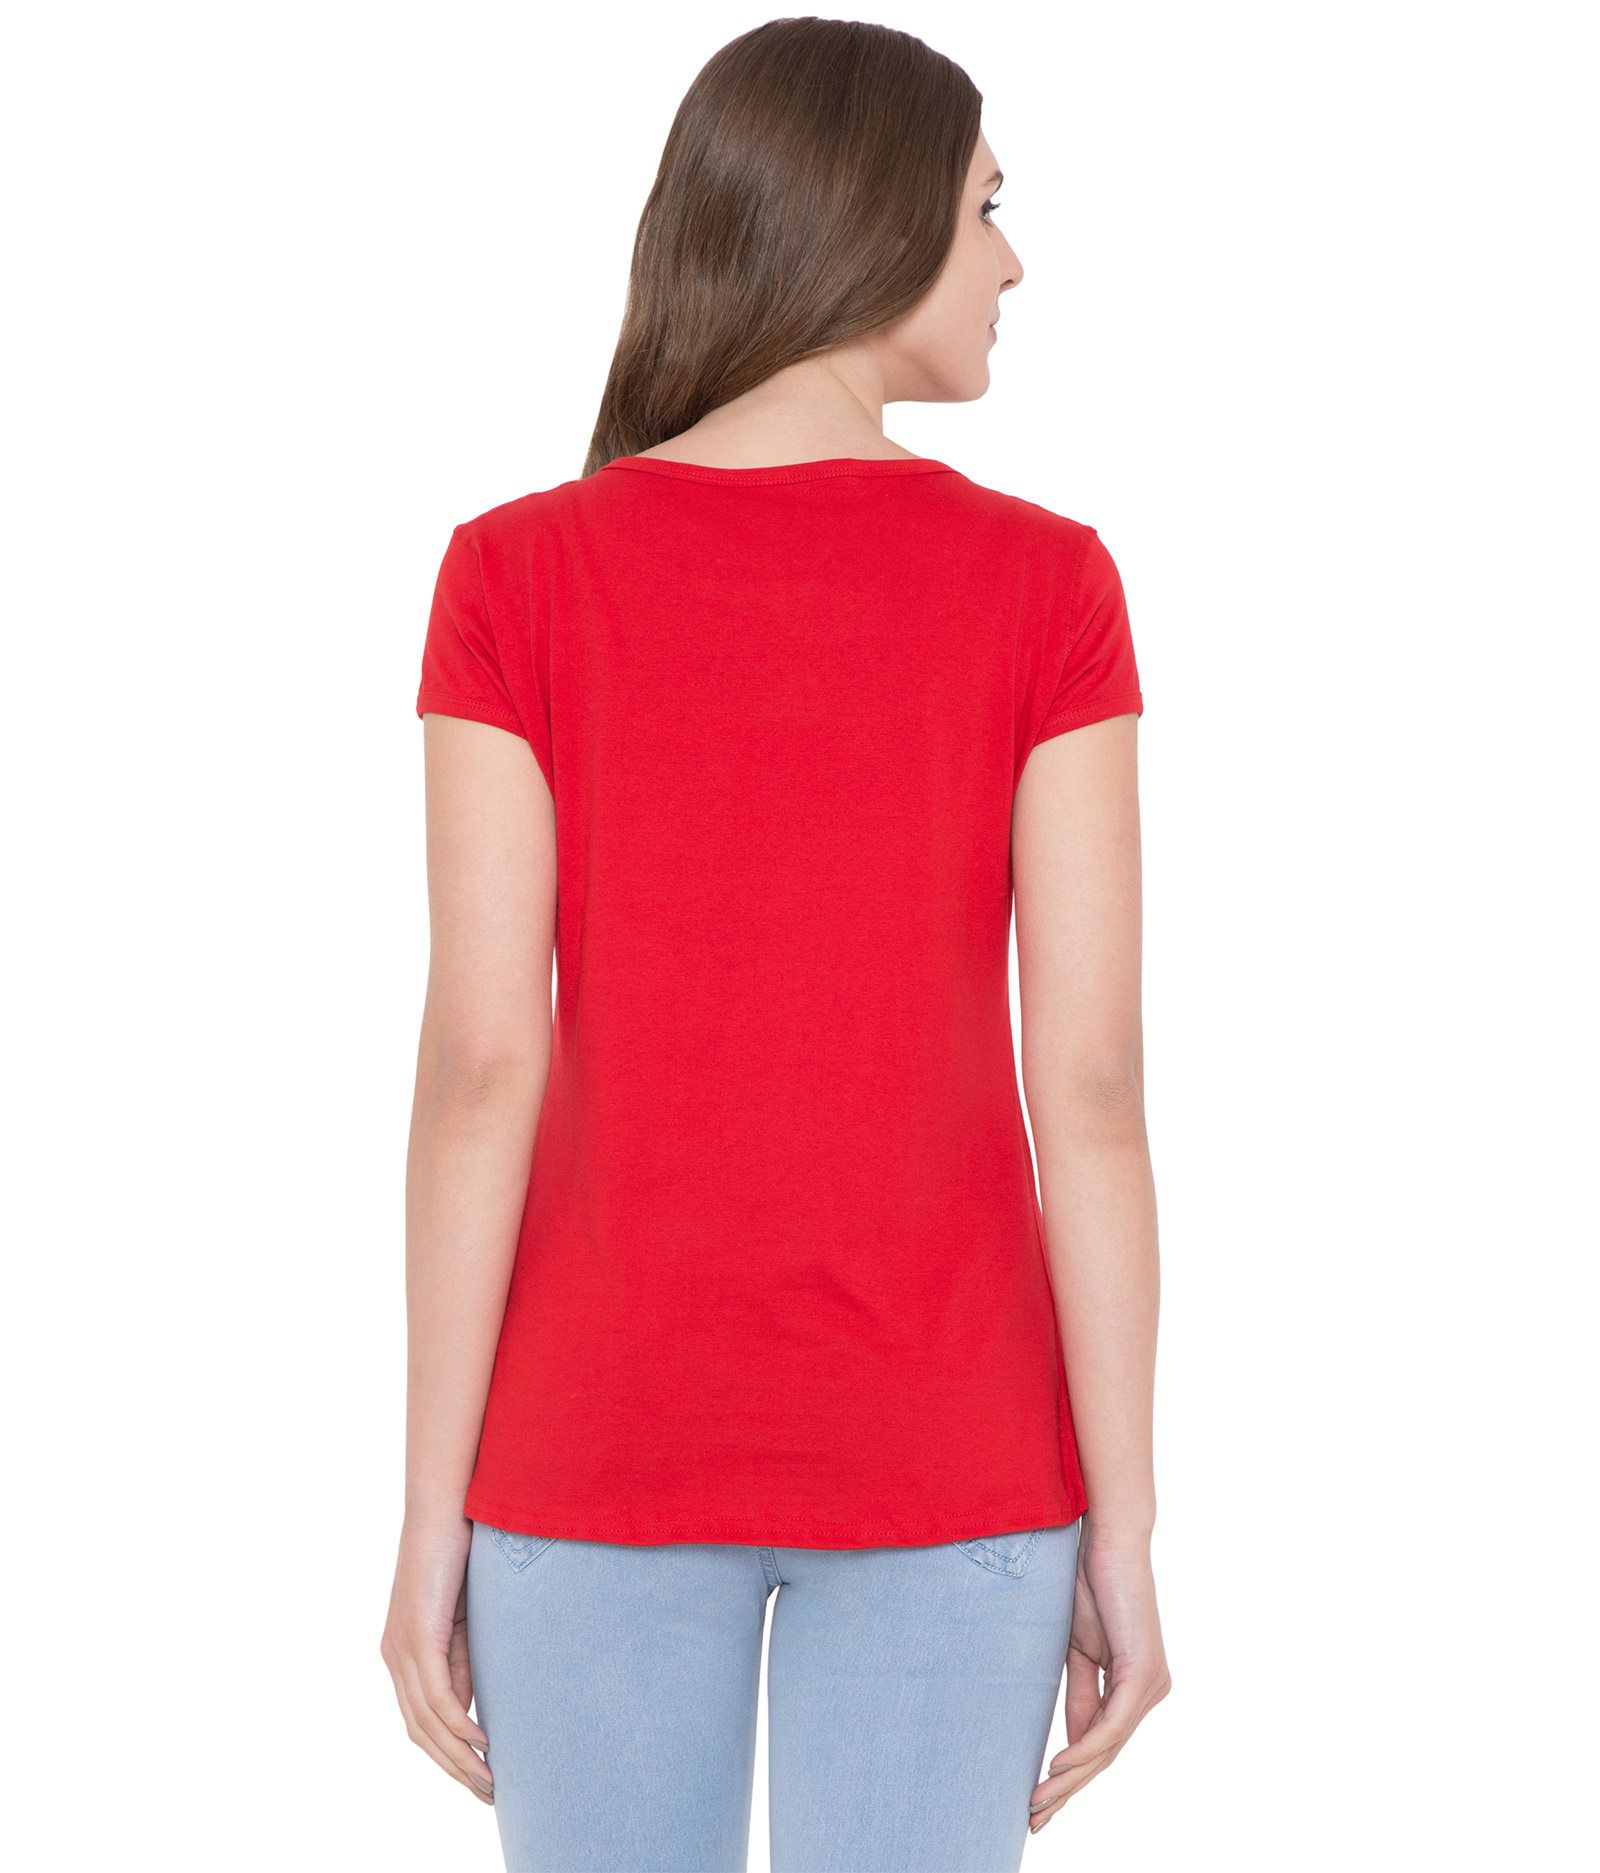 American-Elm Round Neck Slim Fit Printed T-Shirt for Women